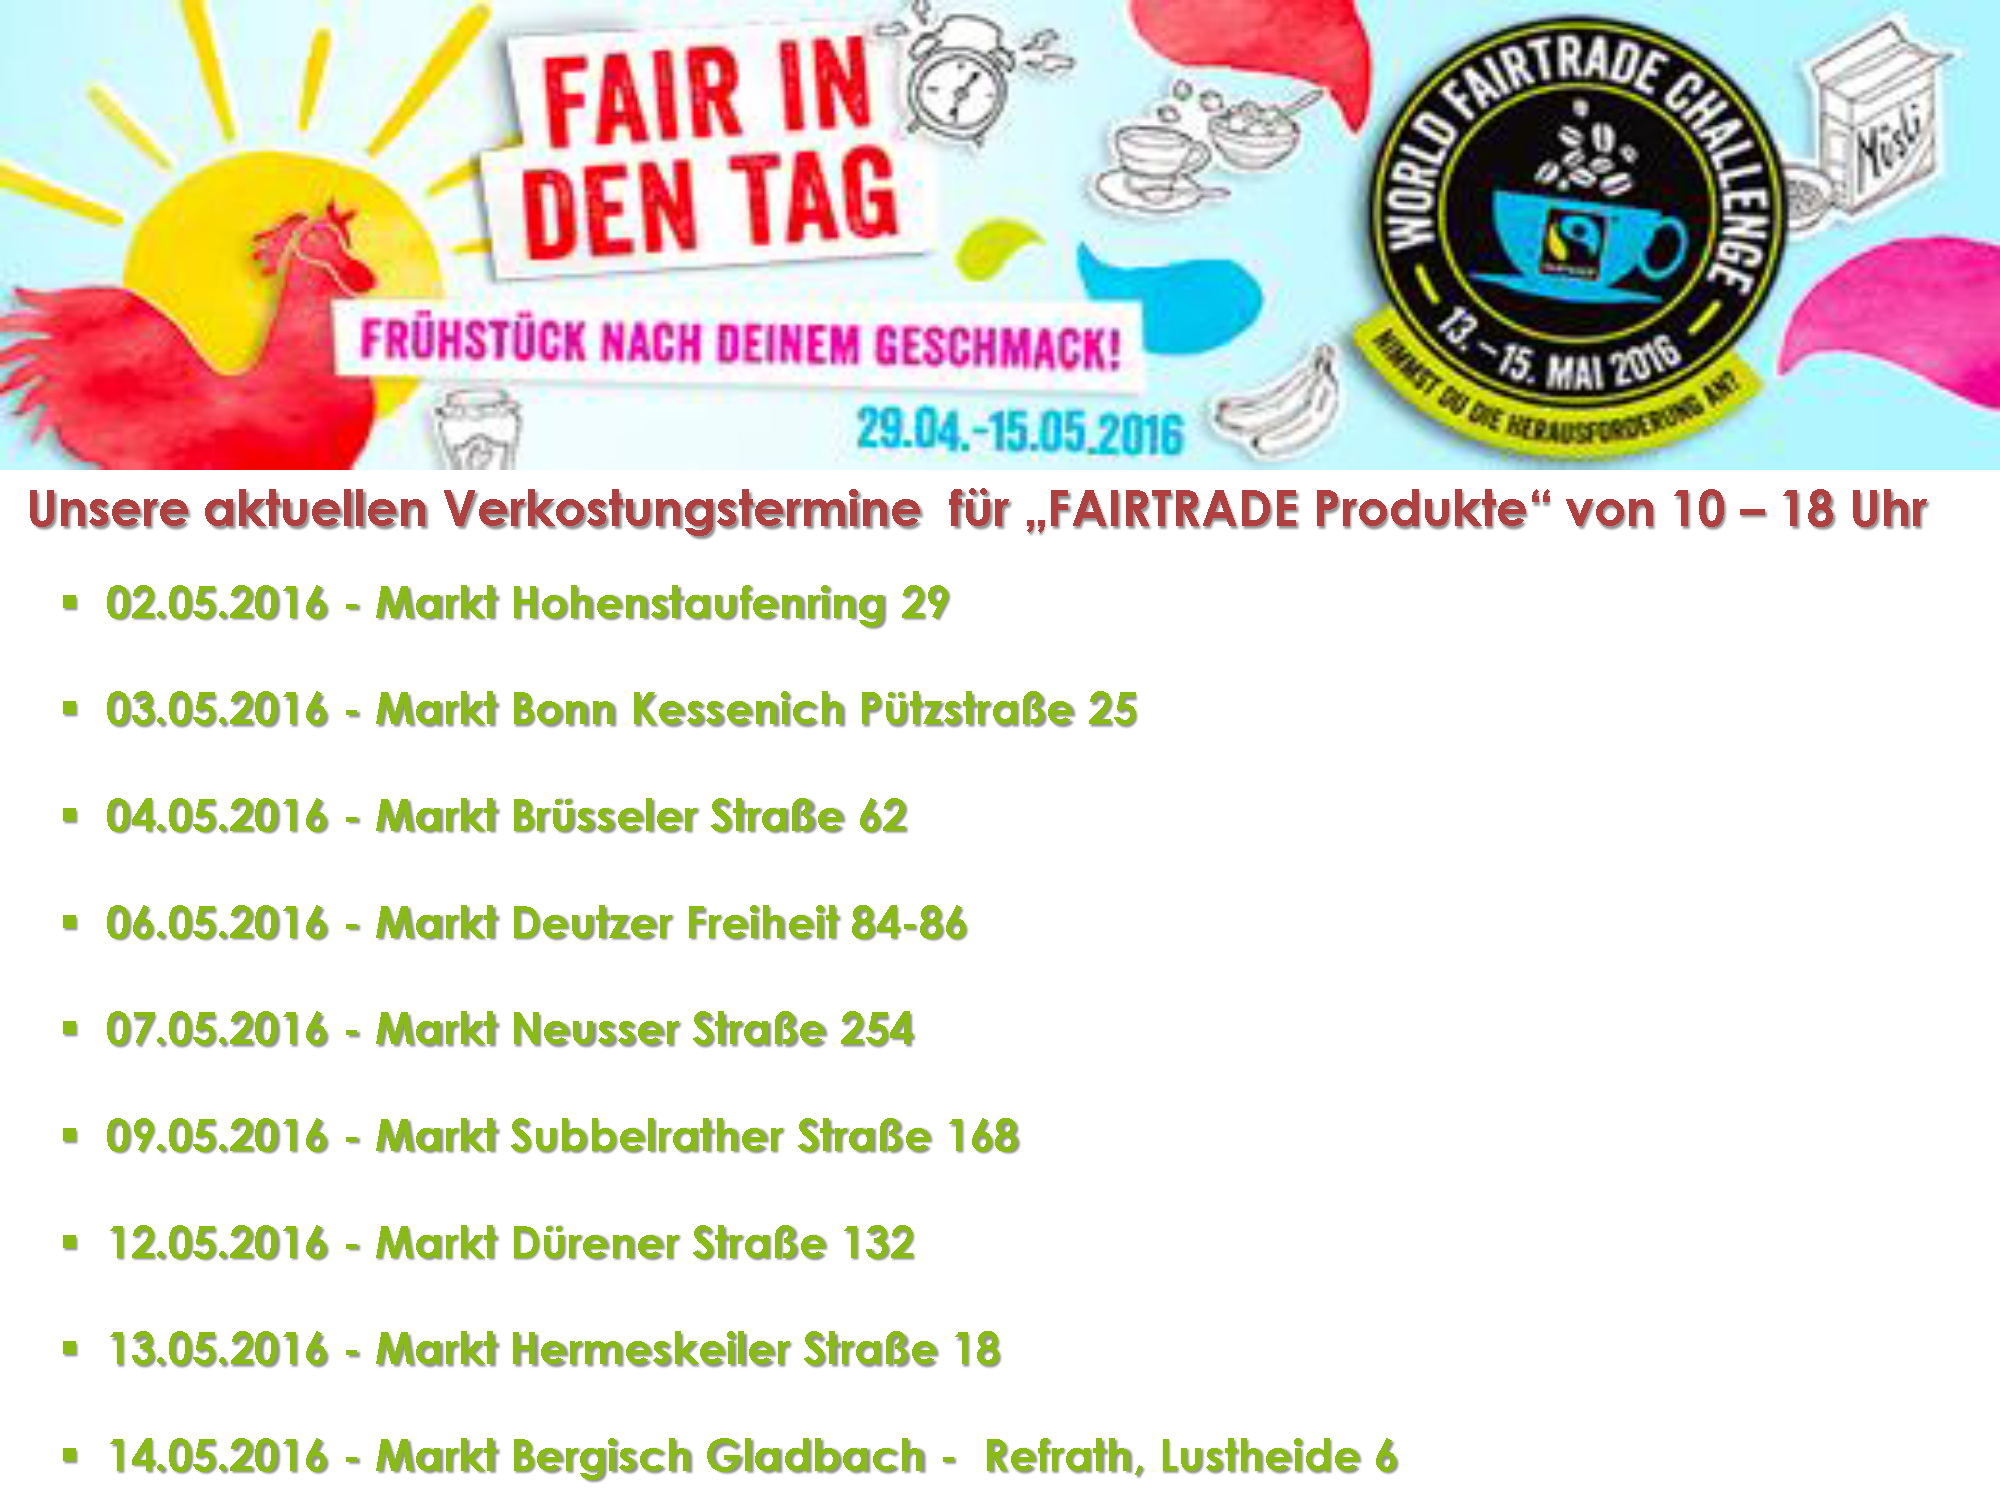 FAIRTRADE Mai 2016